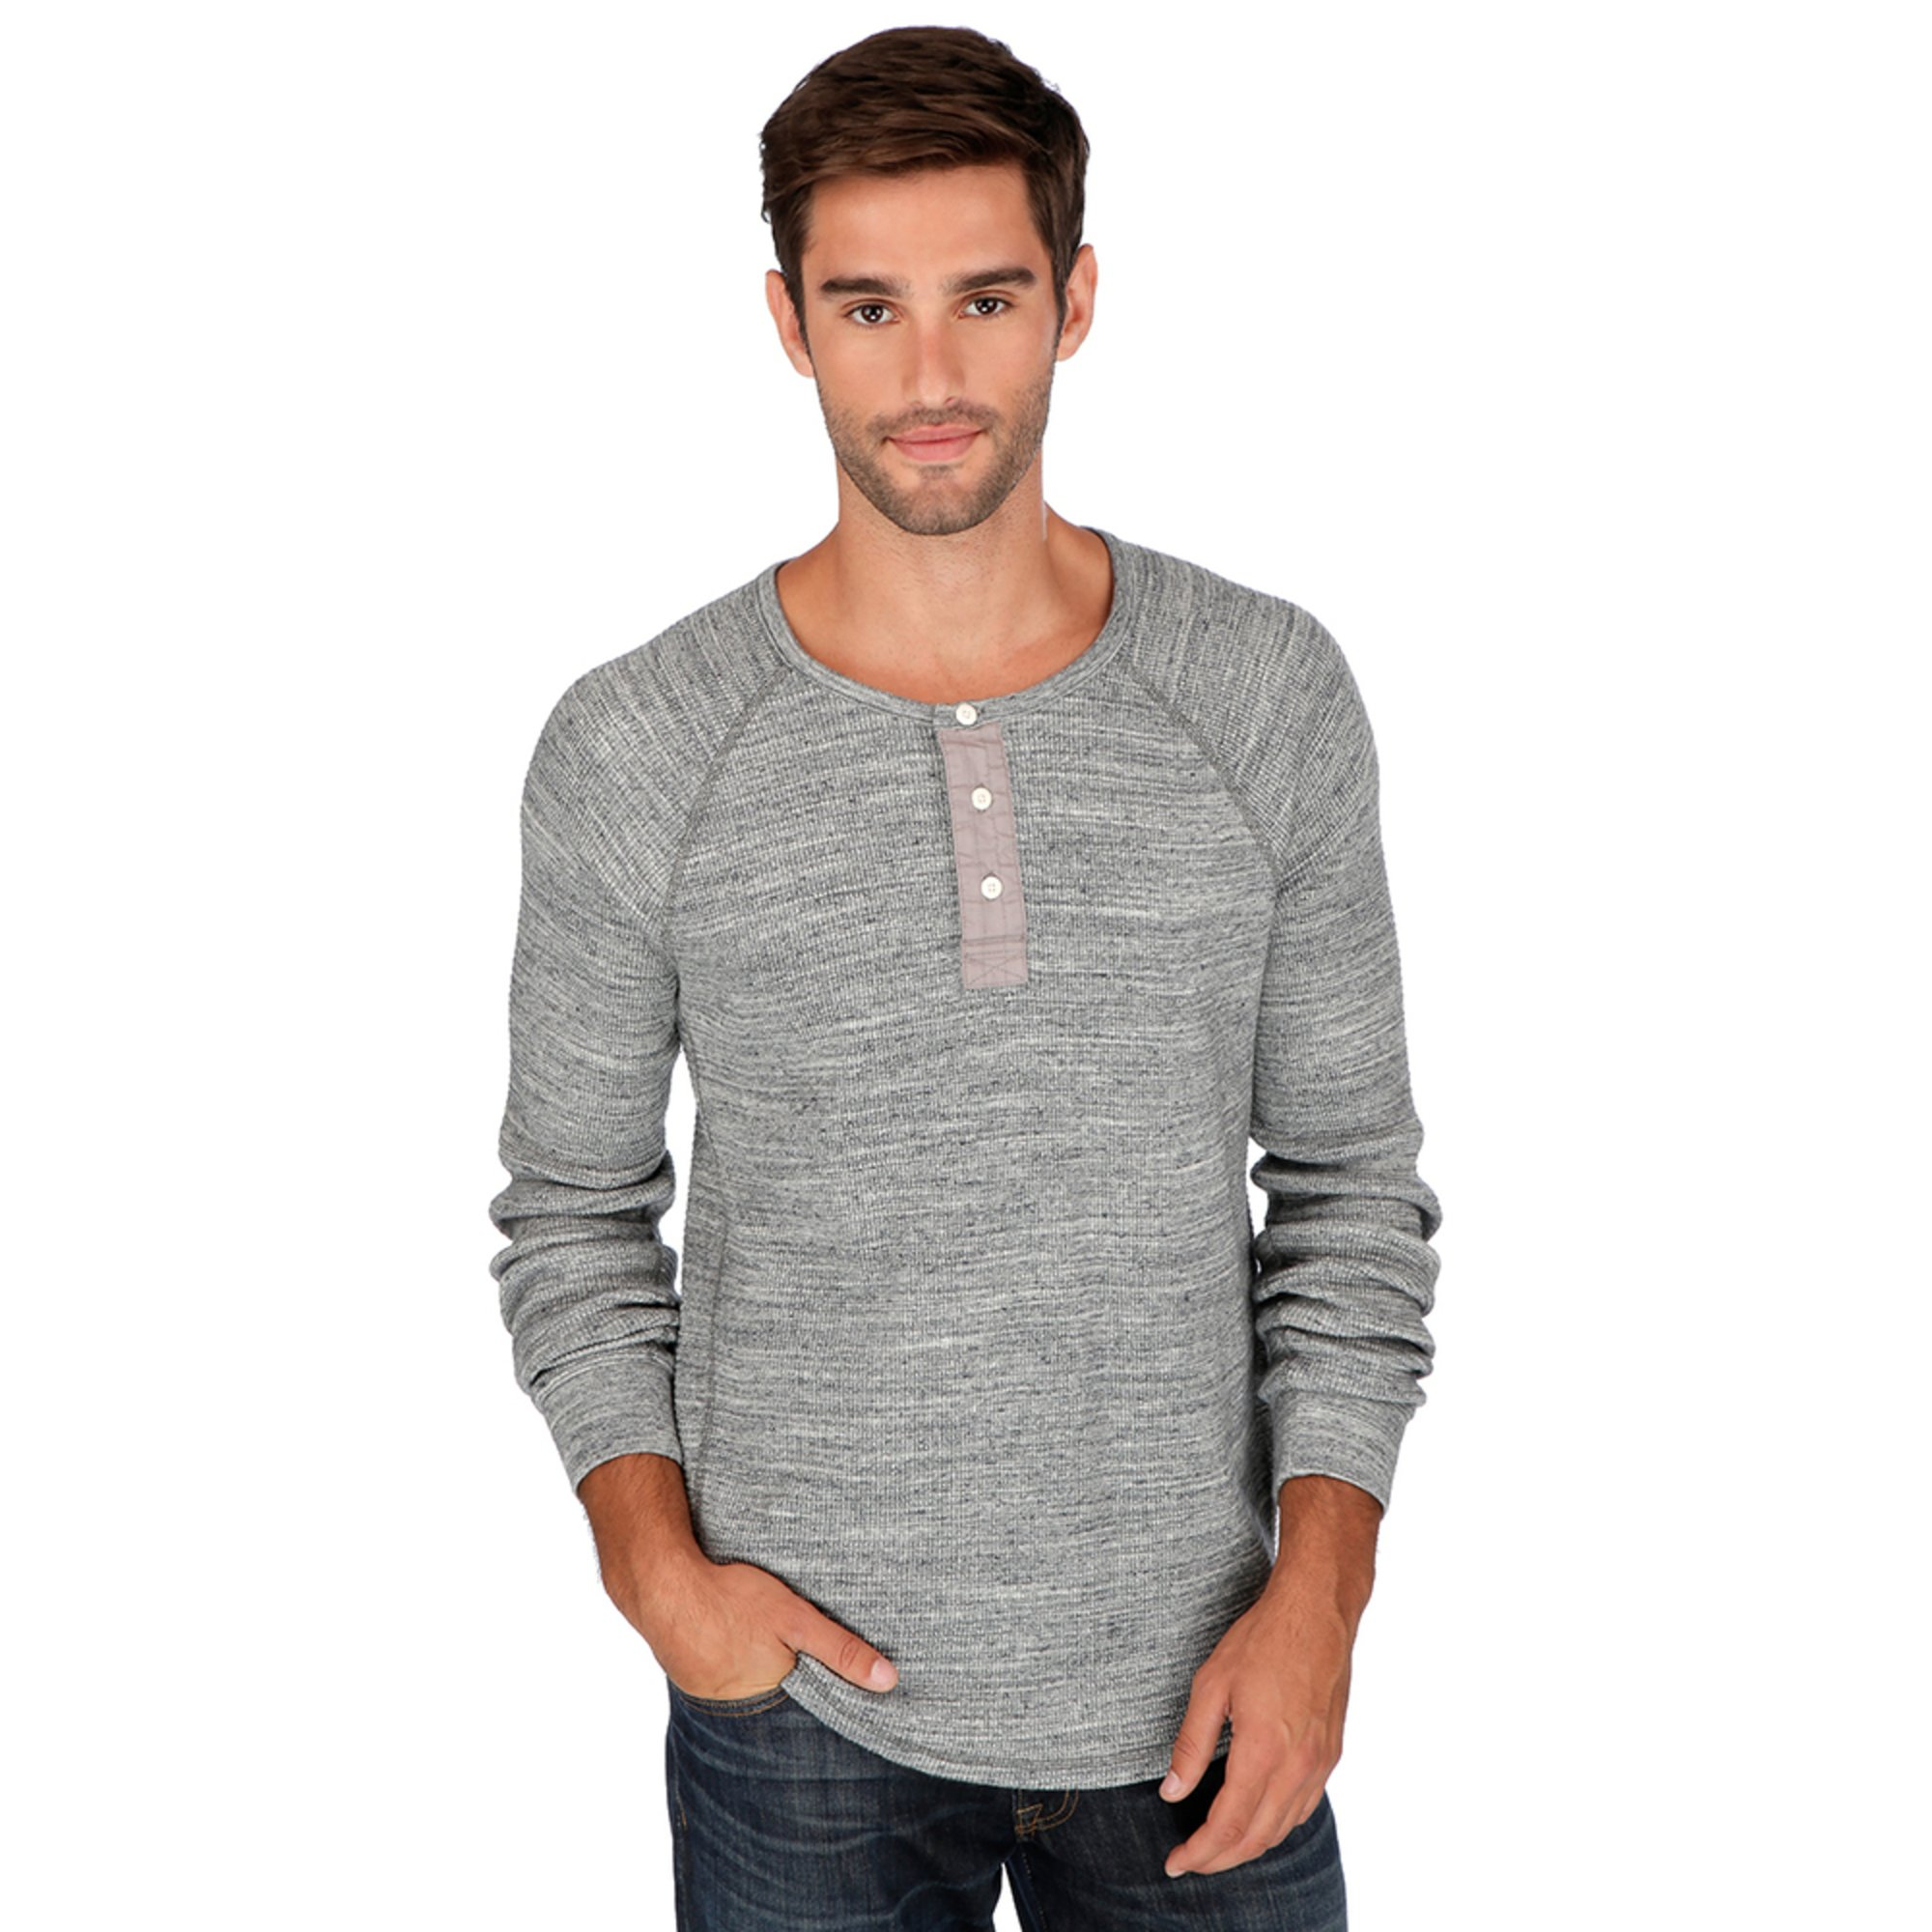 Lucky brand men 39 s long sleeve thermal henley shirt young for Men s thermal henley long sleeve shirts